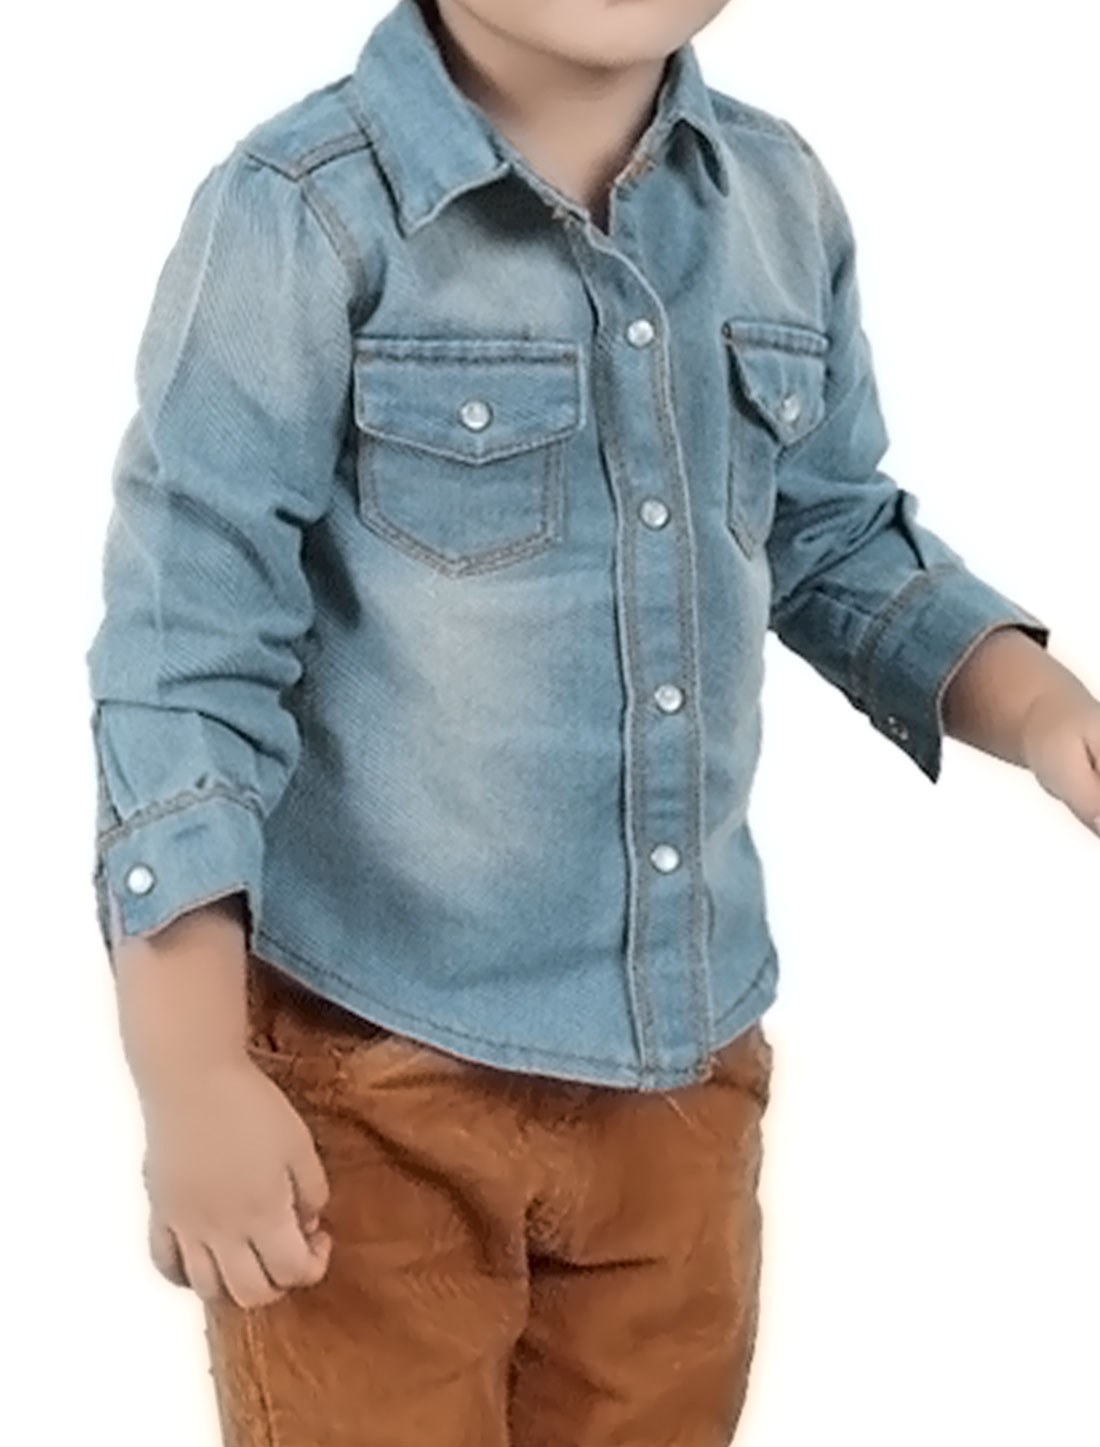 Boys Point Collar Single Breasted Slim Fit Jean Shirt Allegra Kids Blue 4